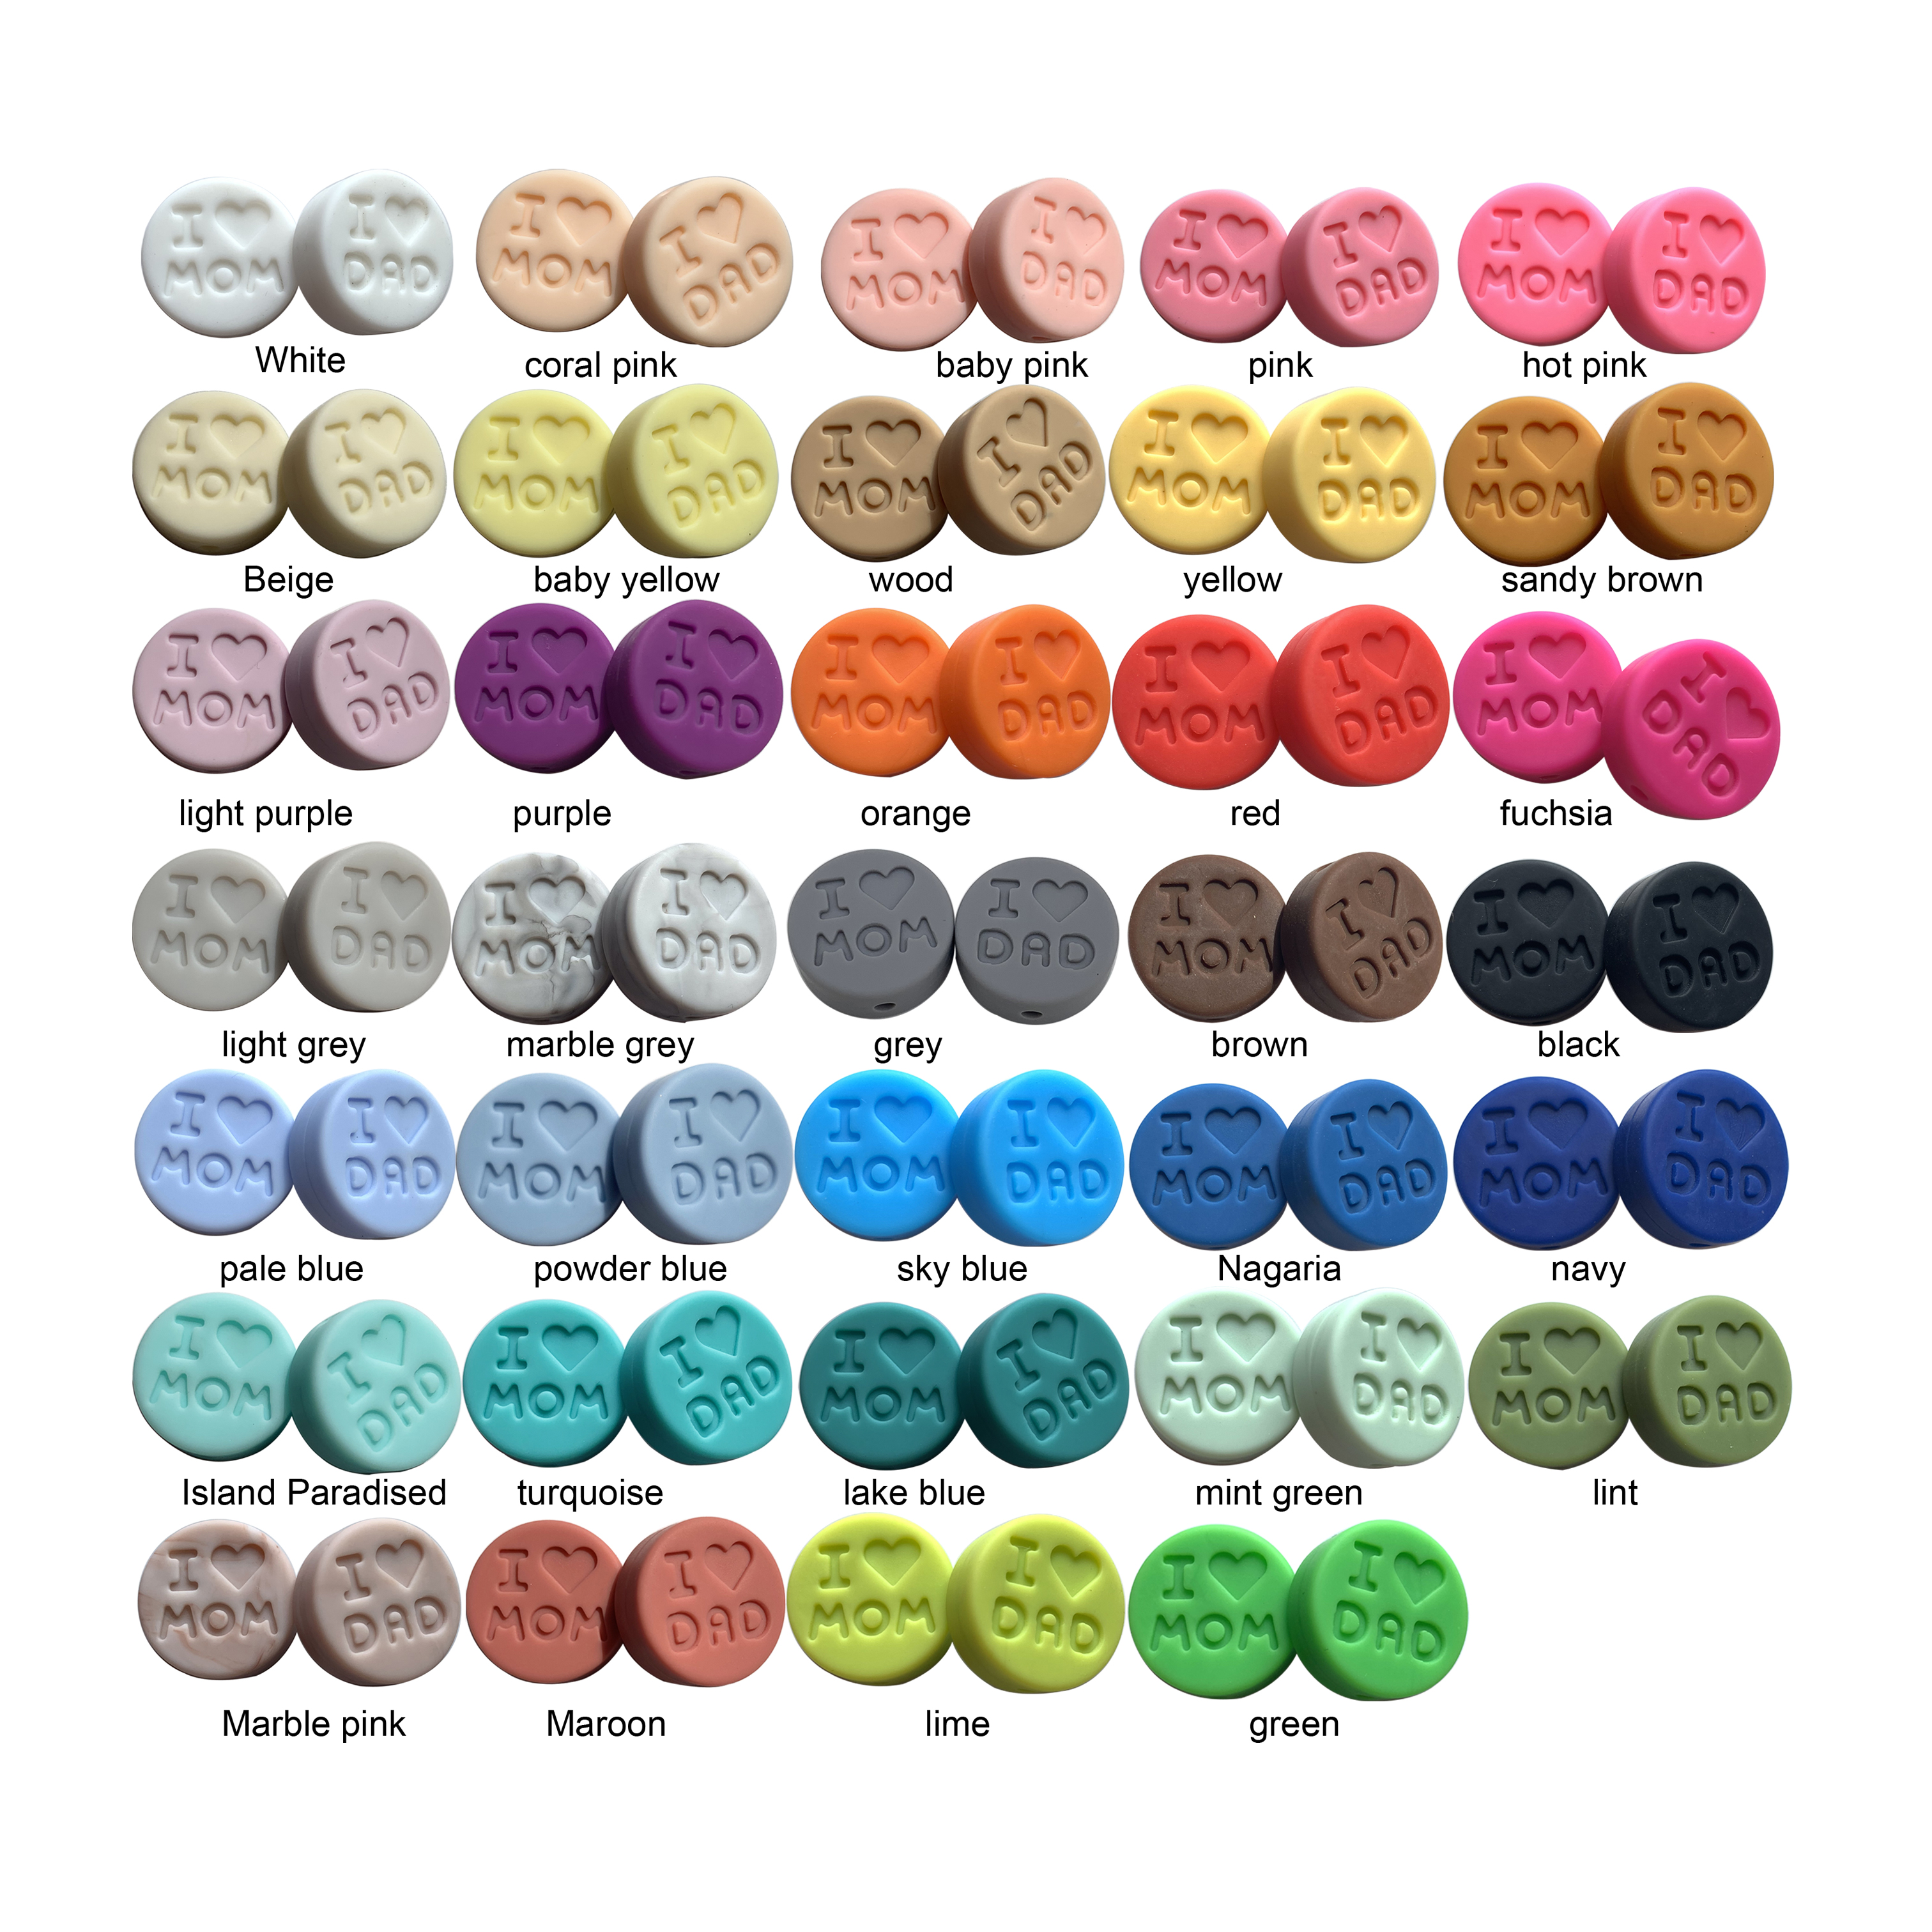 100pcs Round Silicone Beads I Love Mom/Dad Baby Teething Beads DIY Pacifier Clips Teething Toys Rodent Baby Teethers